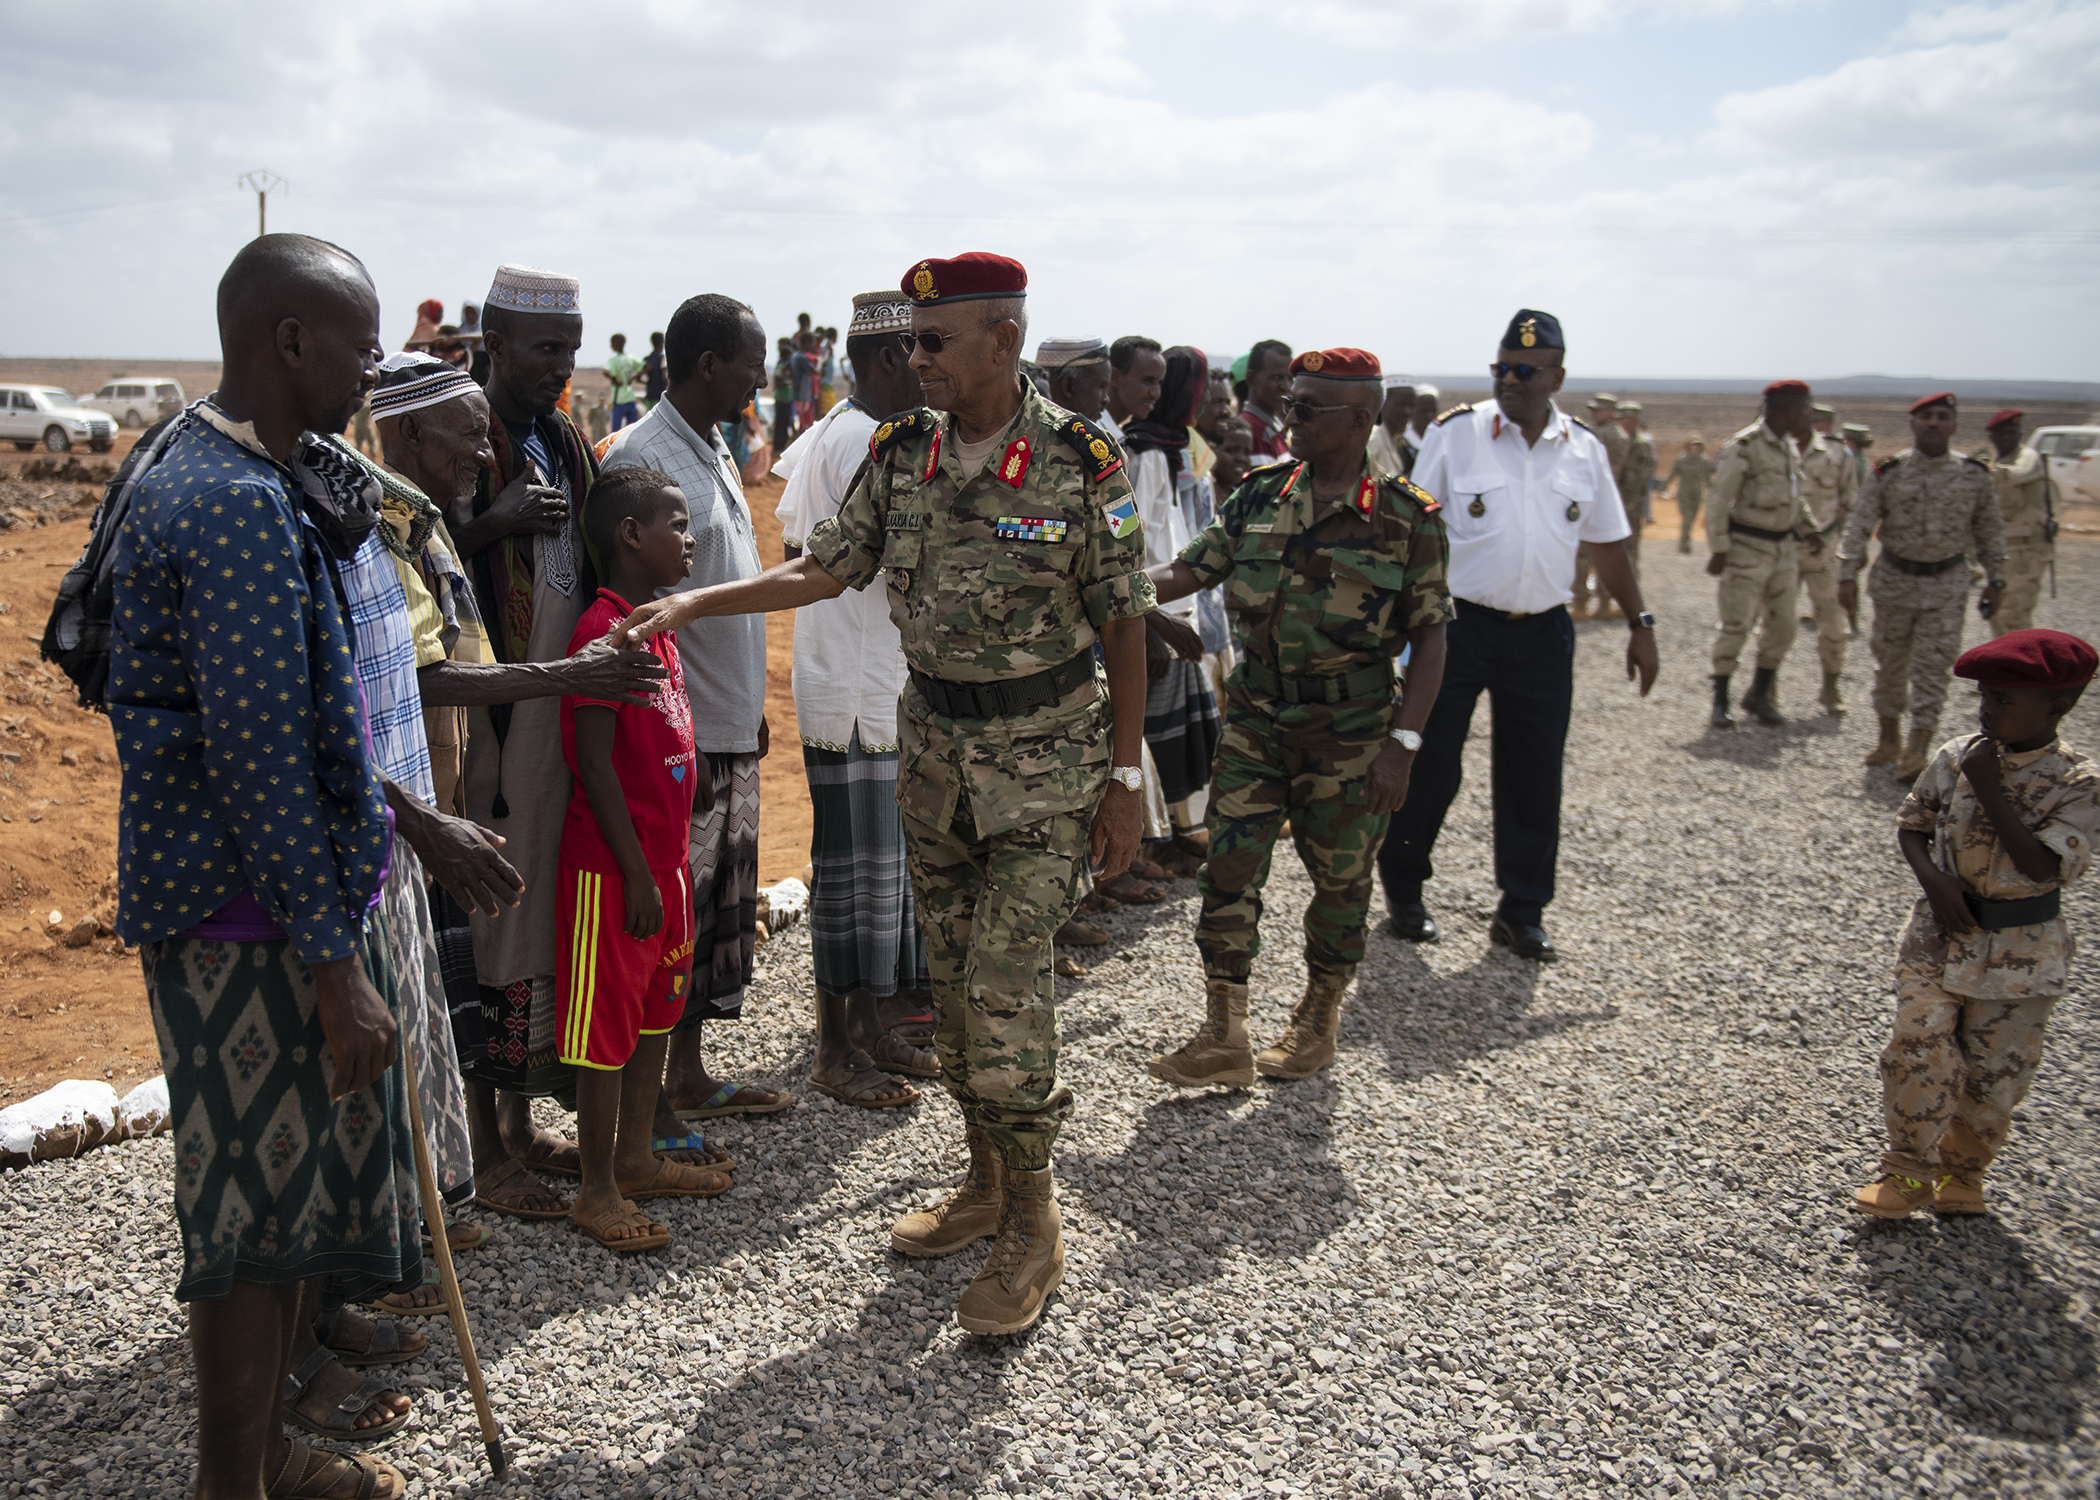 Djiboutian citizens greet military leaders during the Ali Oune Medical Clinic ribbon cutting ceremony in Ali Oune, Djibouti, Jan. 31, 2019. The clinic, which the U.S. Navy Seabees from Naval Mobile Construction Battalion 1, Combined Joint Task Force - Horn of Africa, have been working to complete for five months, is intended to enhance the Ministry of Health for Djibouti's ability to provide basic medical, birth and after care to the Ali Oune village and its more than 1,000 residents and rural neighbors. (U.S. Air Force photo by Tech. Sgt. Shawn Nickel)